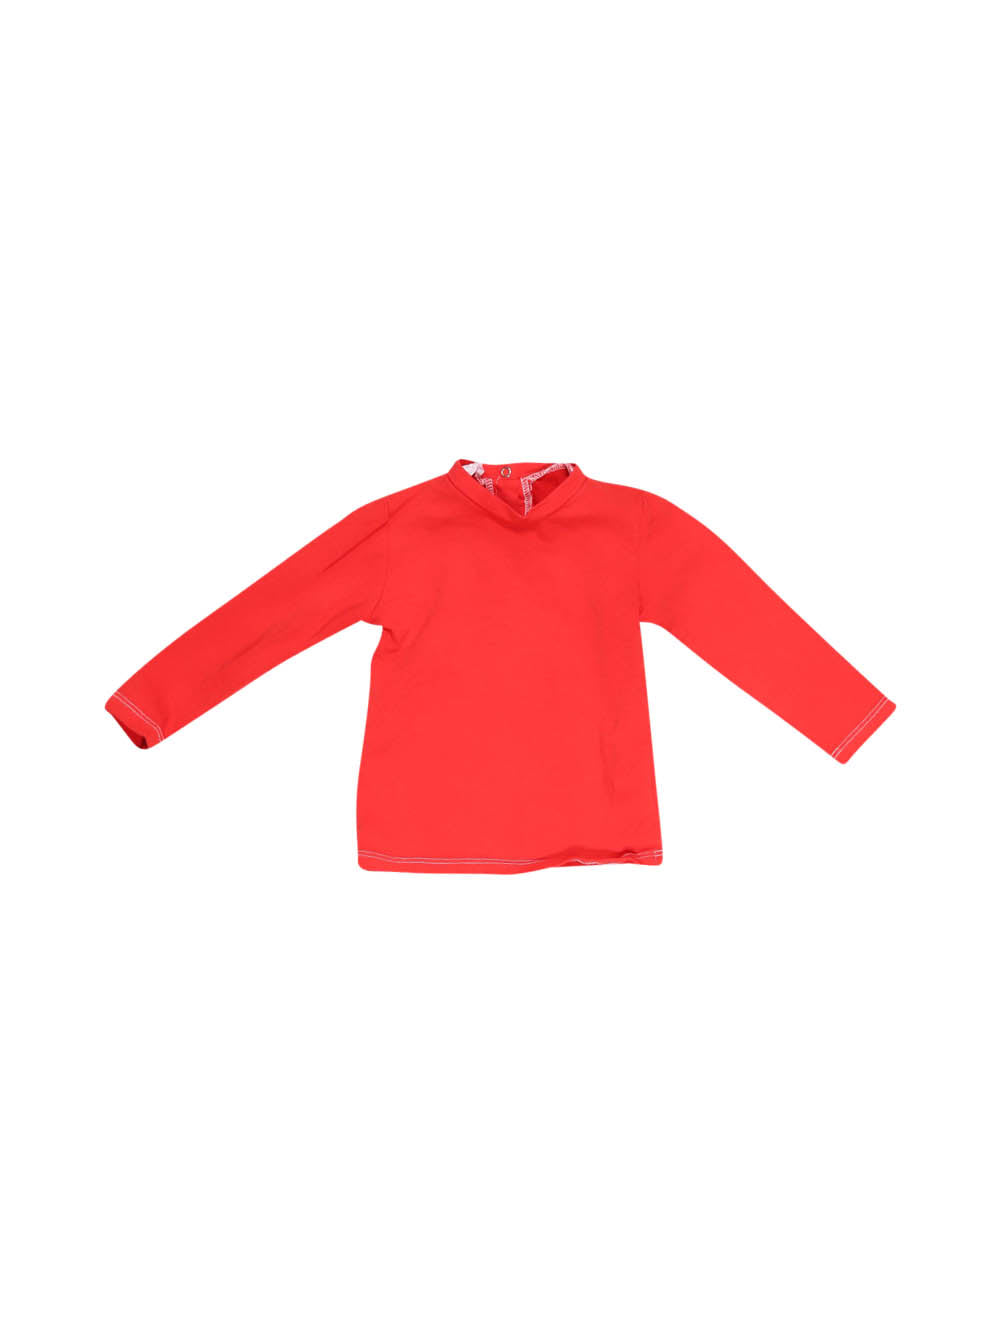 Front photo of Preloved Nazareno Gabrielli Red Girl's long sleeved shirt - size 2-3 yrs